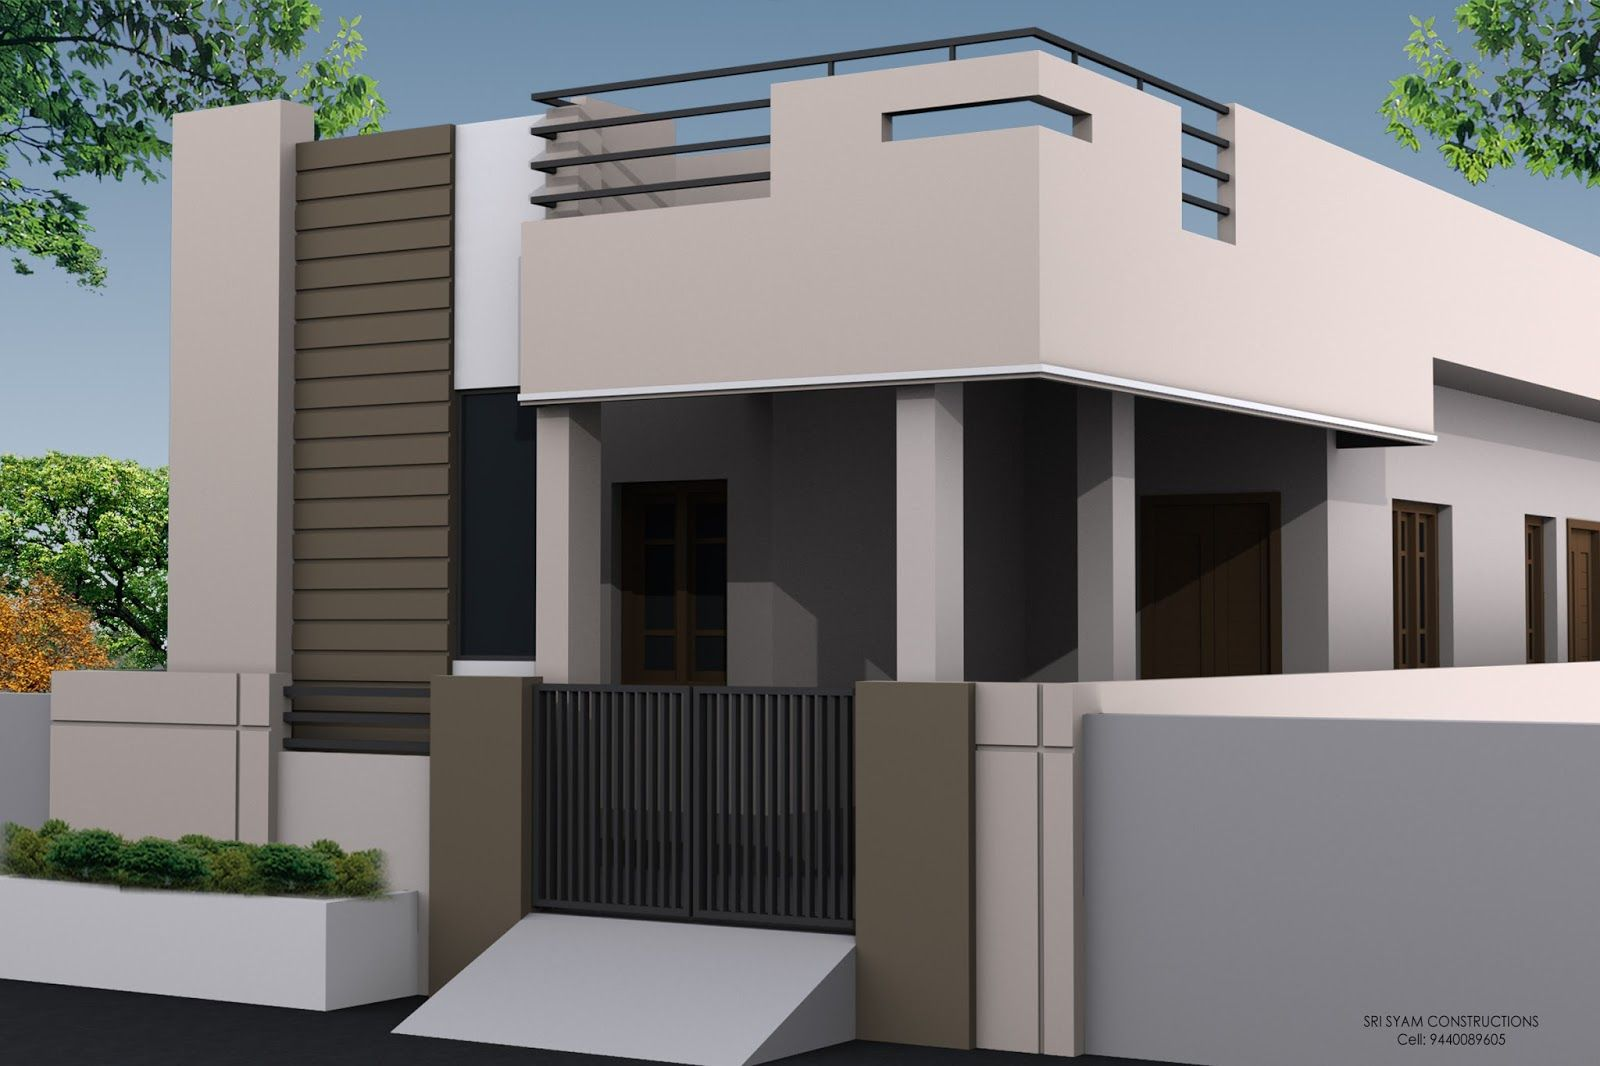 91df4338294c88491193d9acd2a27d83 - Download Small House Single Floor Elevation Designs Images